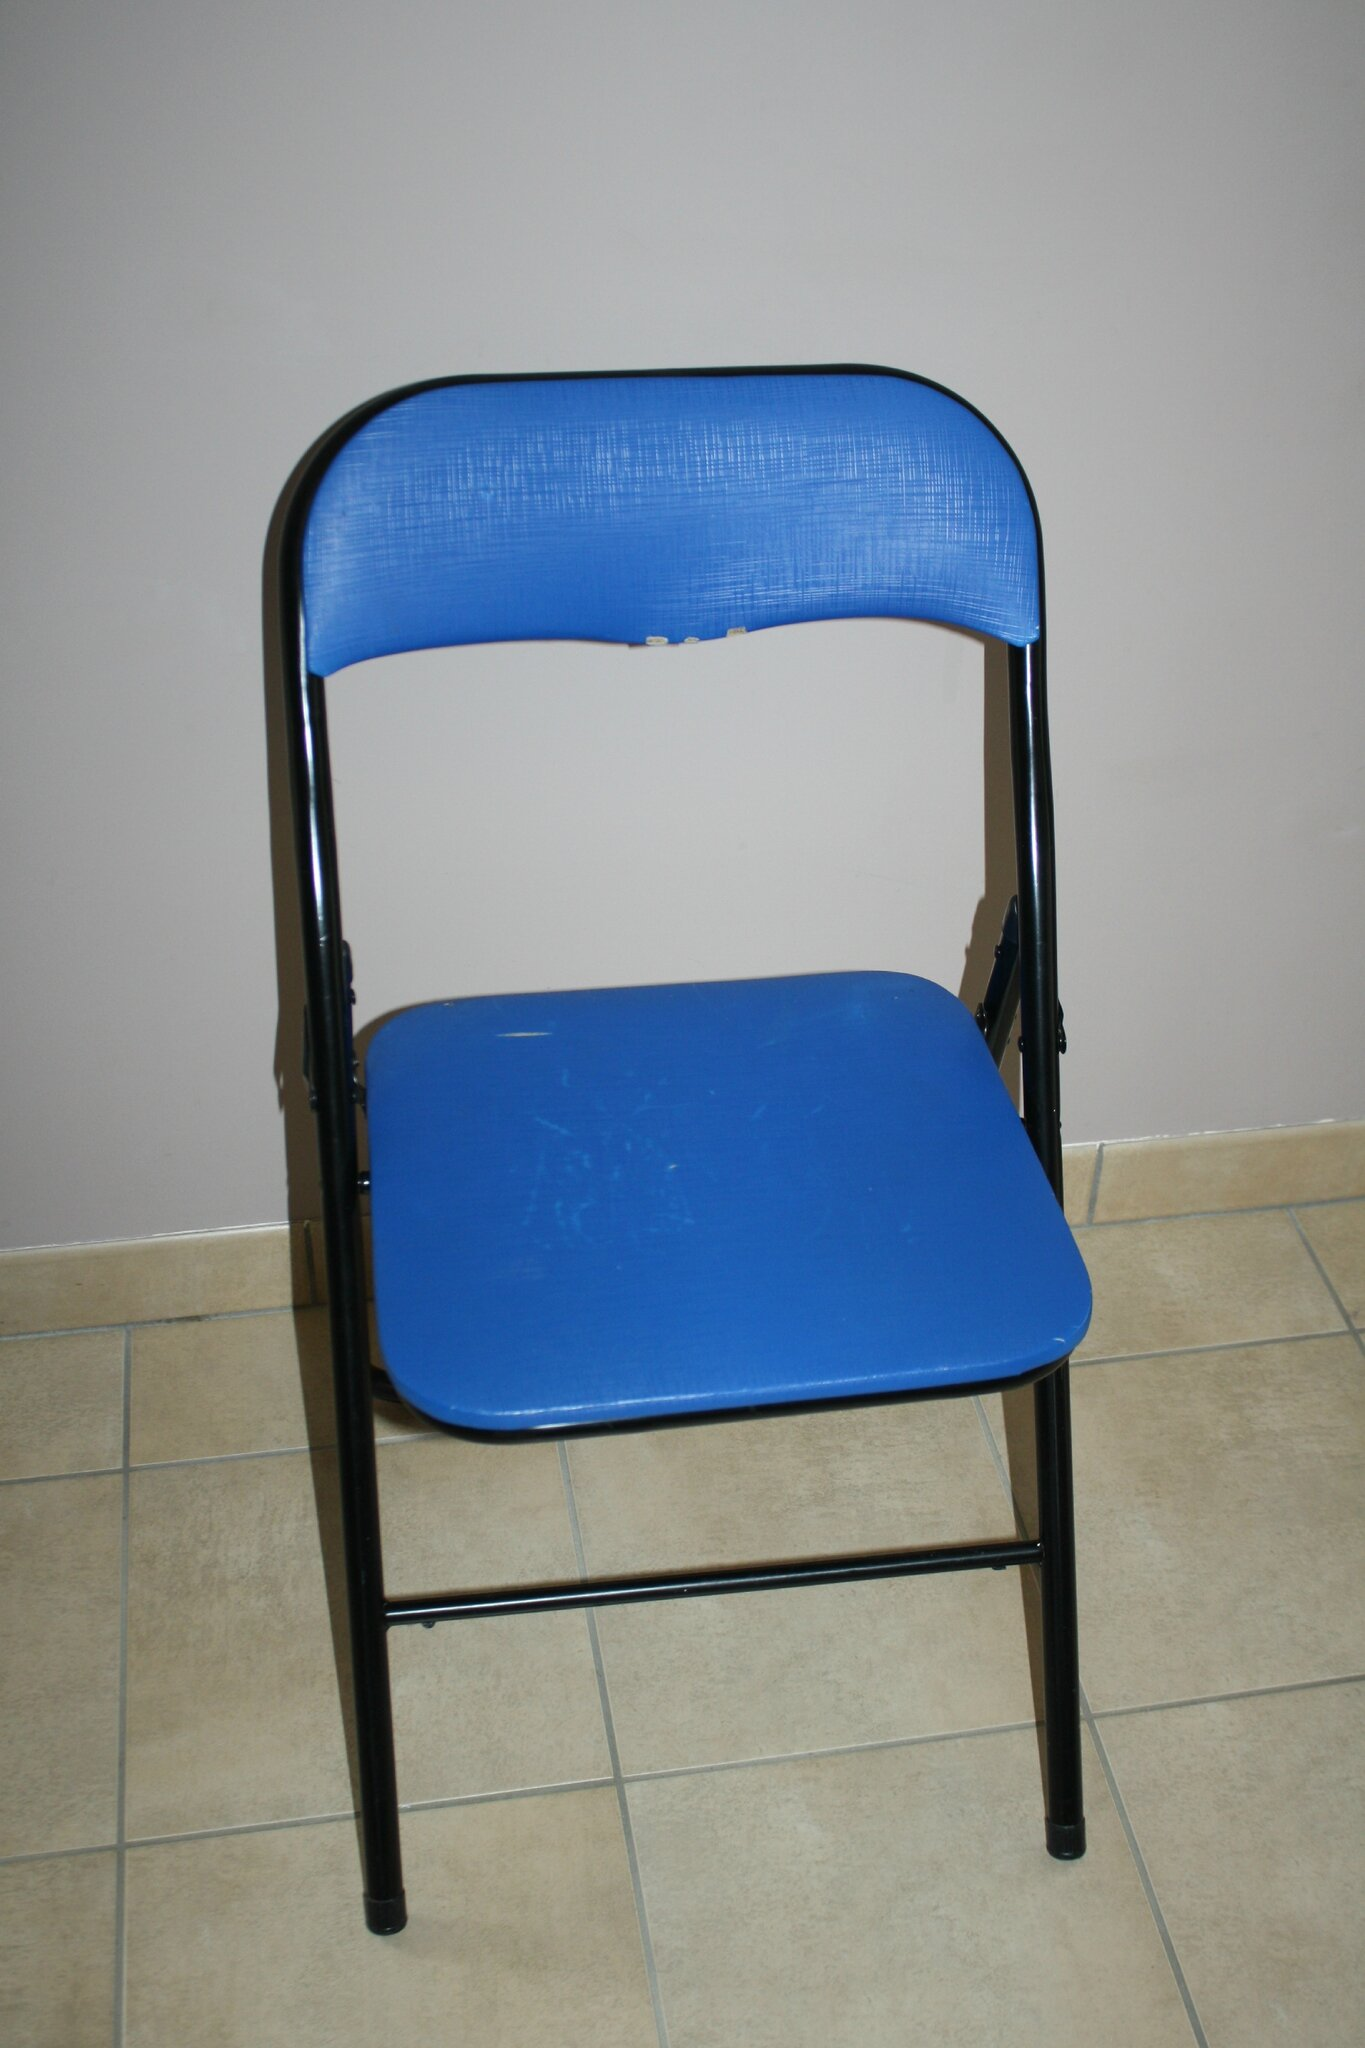 Cheap je bricole je bidouille je with la foir fouille chaise - La foir fouille chaise ...